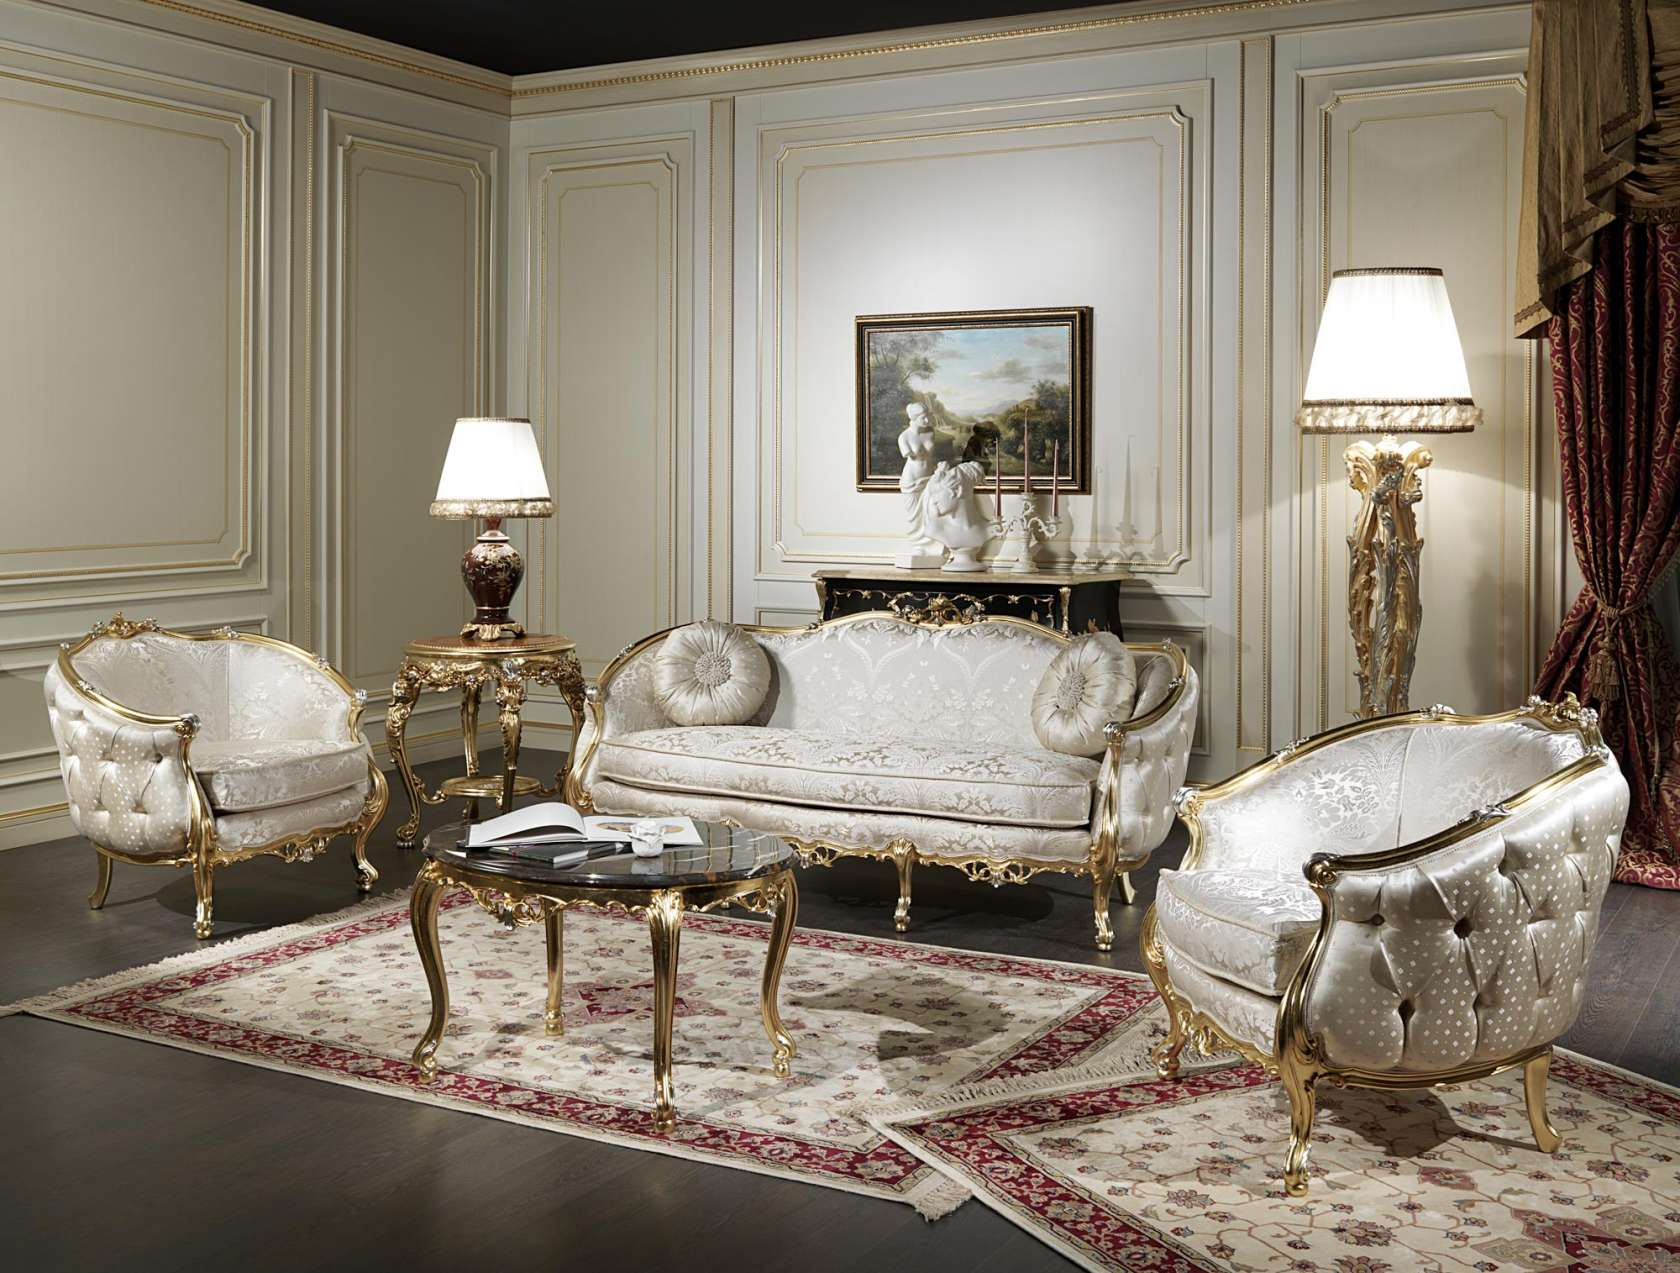 Italian Living Room Furniture Italian Classic Furniture Living Room Living Room Furnishings